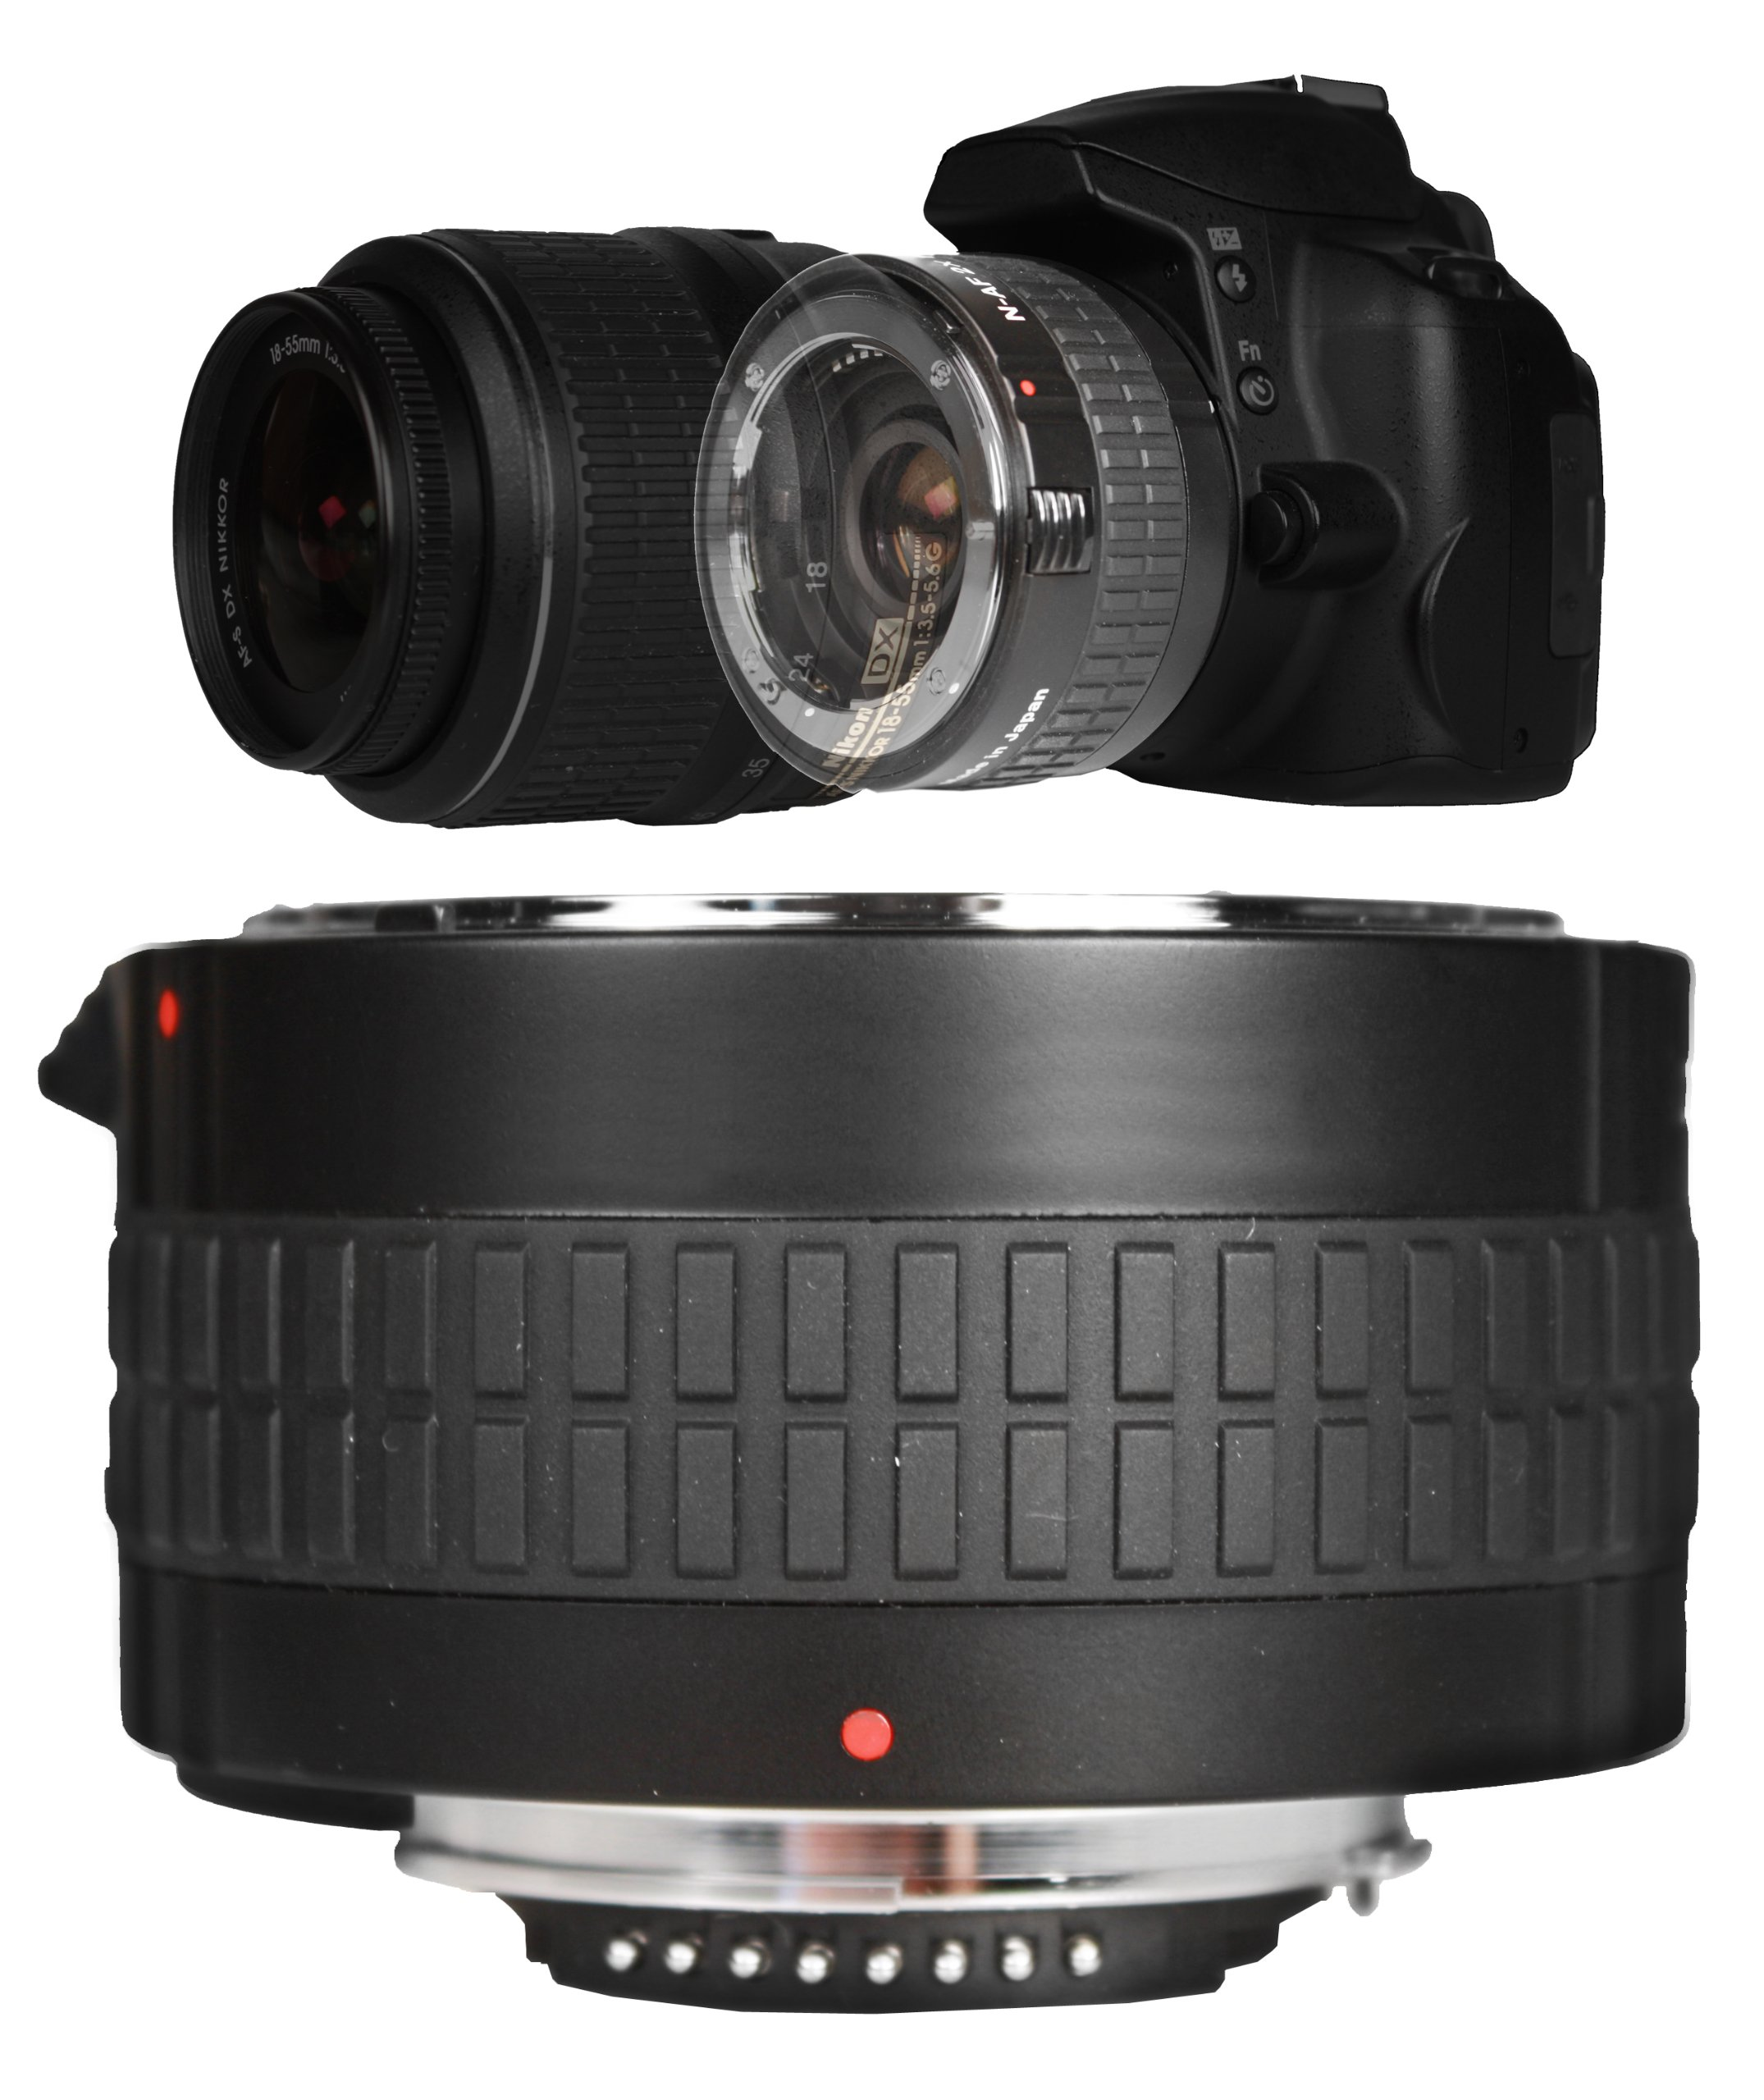 Bower SX7DGC 2x Teleconverter for Canon (7 Element) by Bower Camera